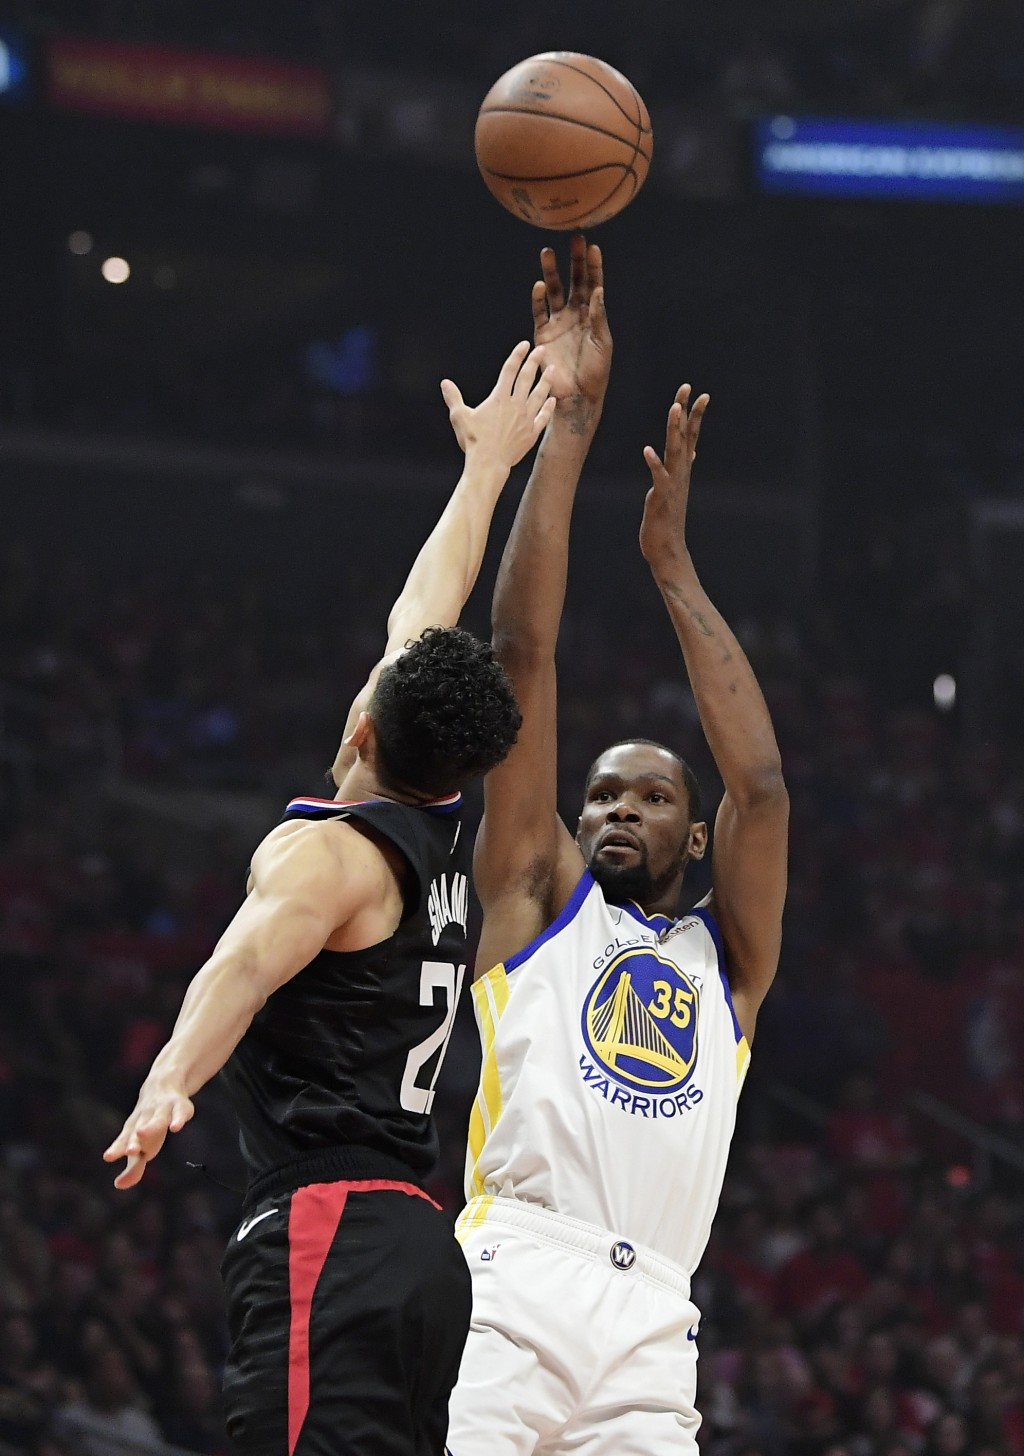 d396b33b2013 ... during the first half in Game 3 of a first. Golden State Warriors  forward Kevin Durant